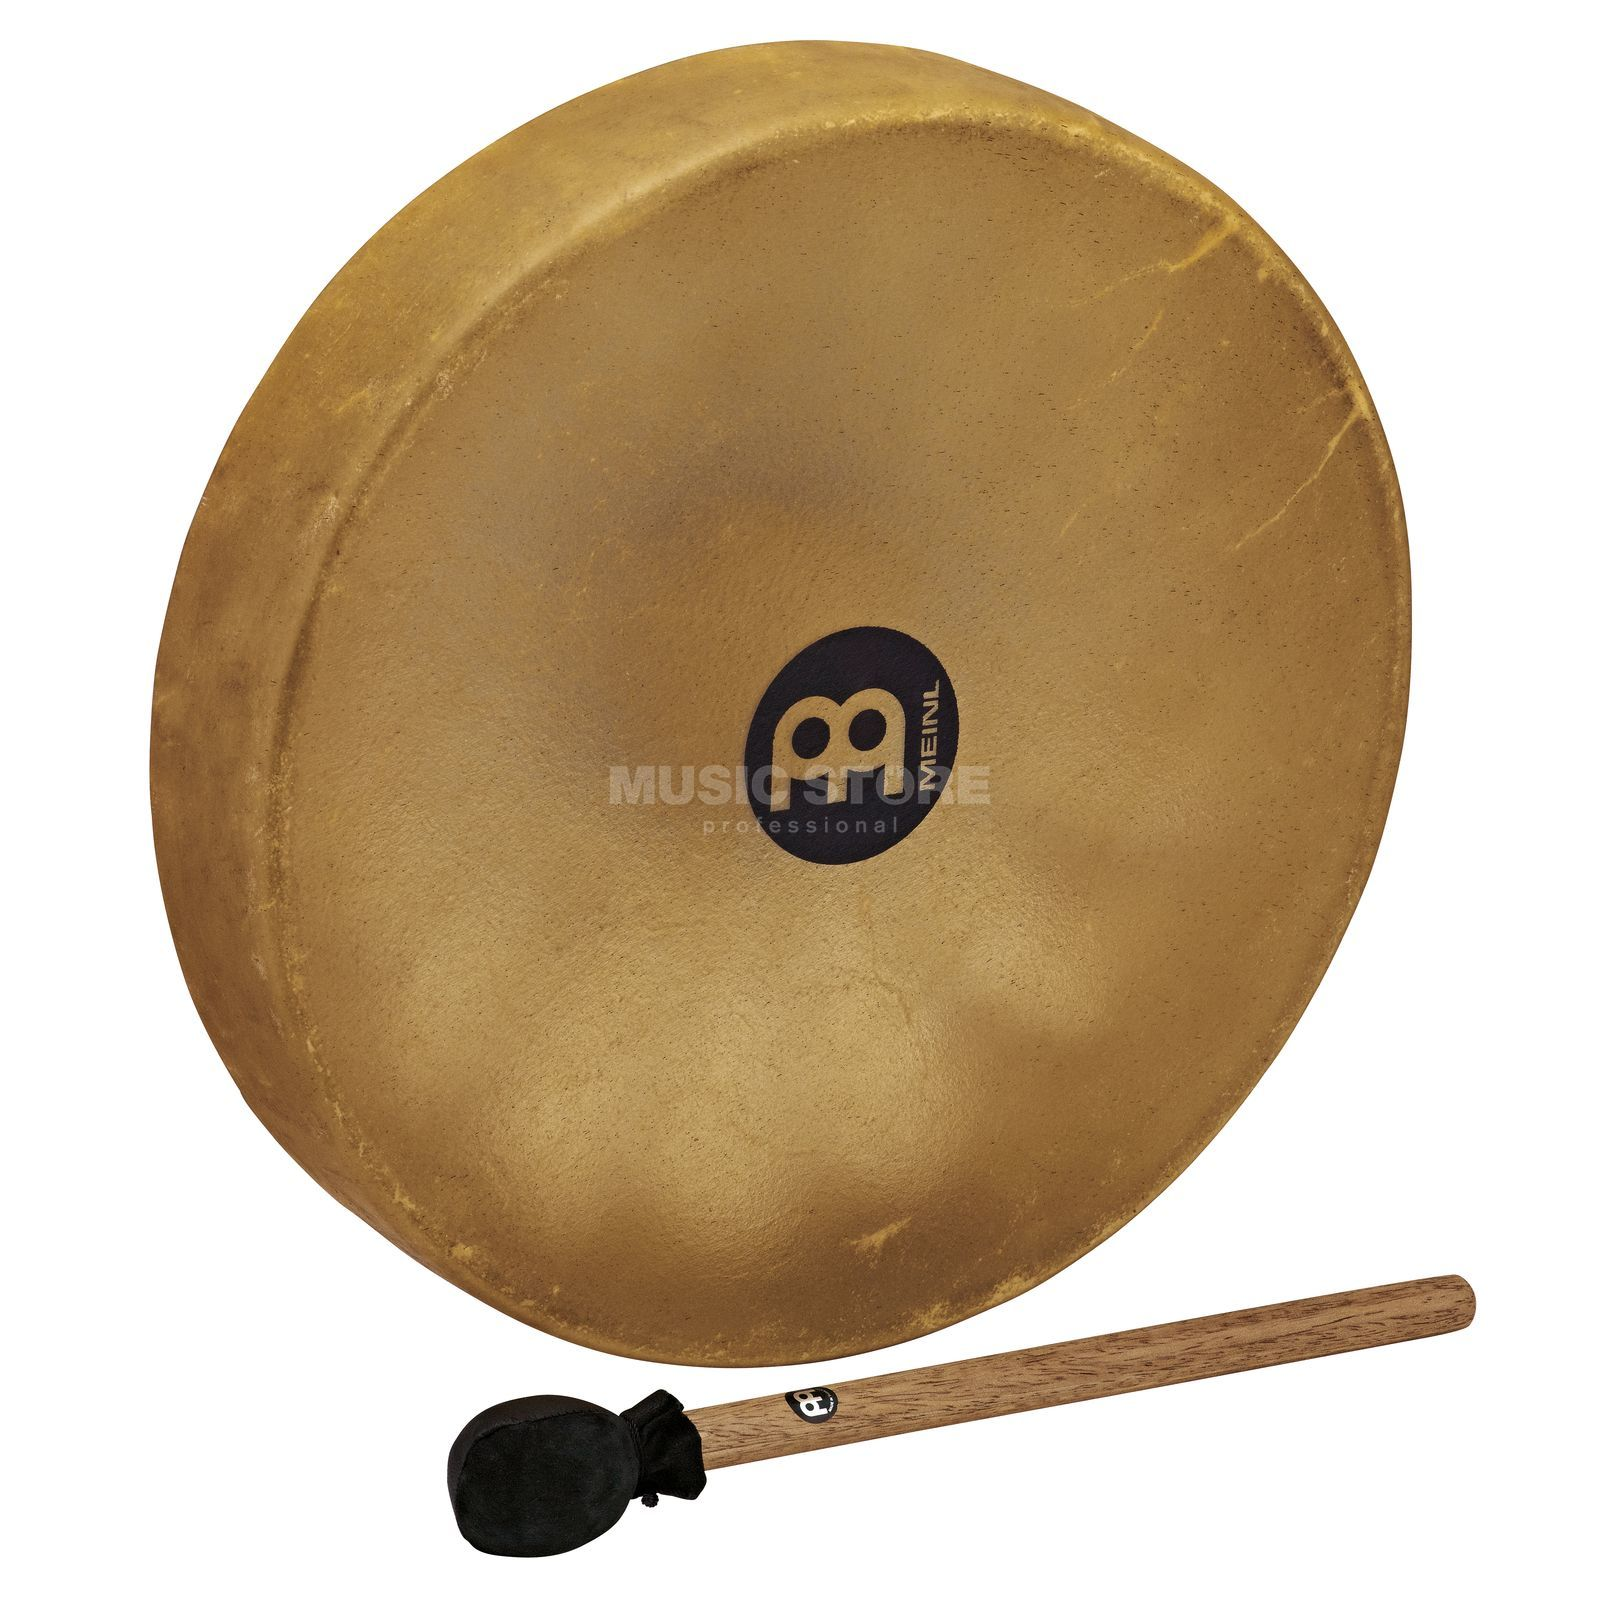 "Meinl Frame Drum HOD15, 15"", Hand Selected Buffalo Head Produktbillede"